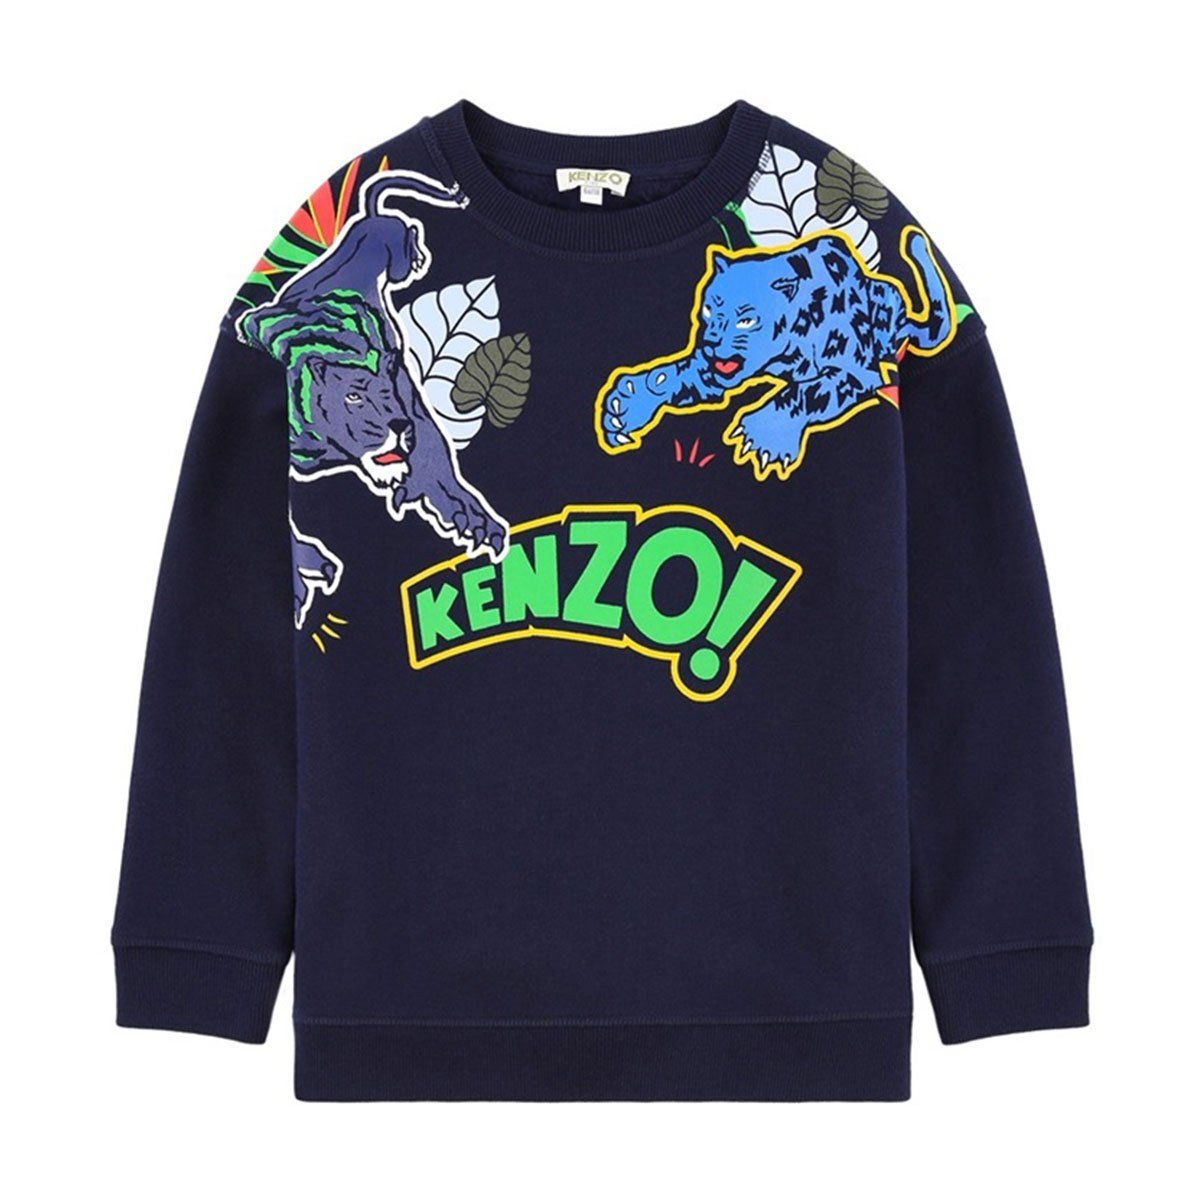 Kenzo - Enzio Sweatshirt For Boys, Navy